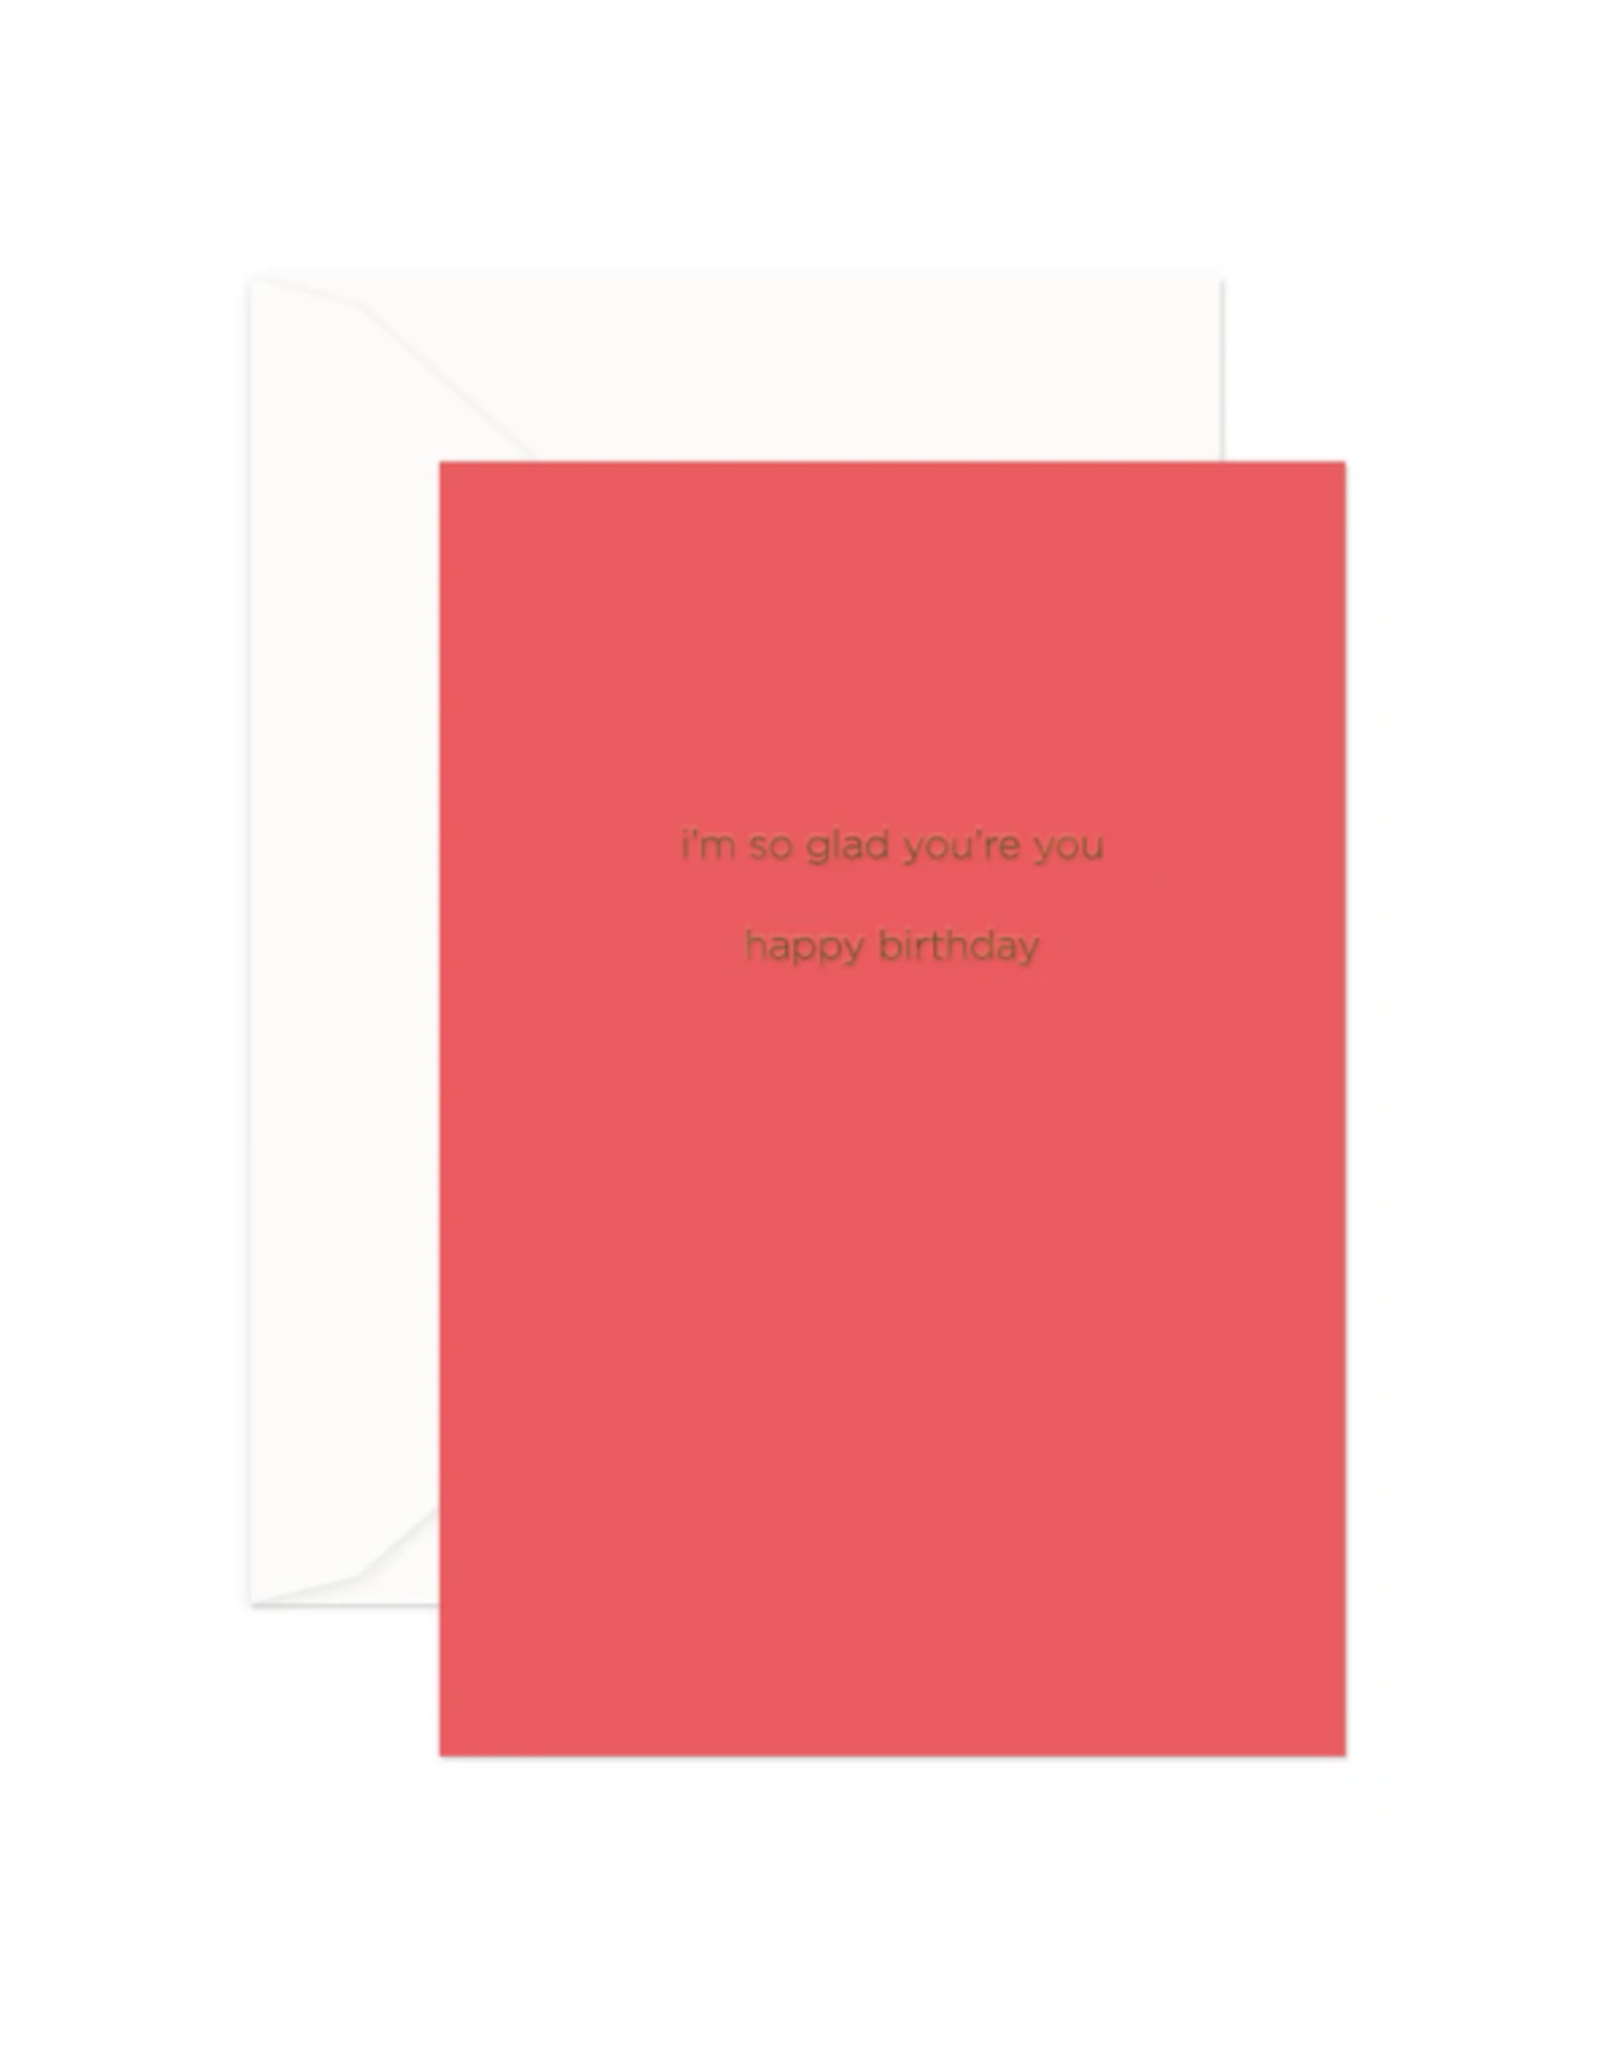 Glad You're You Card